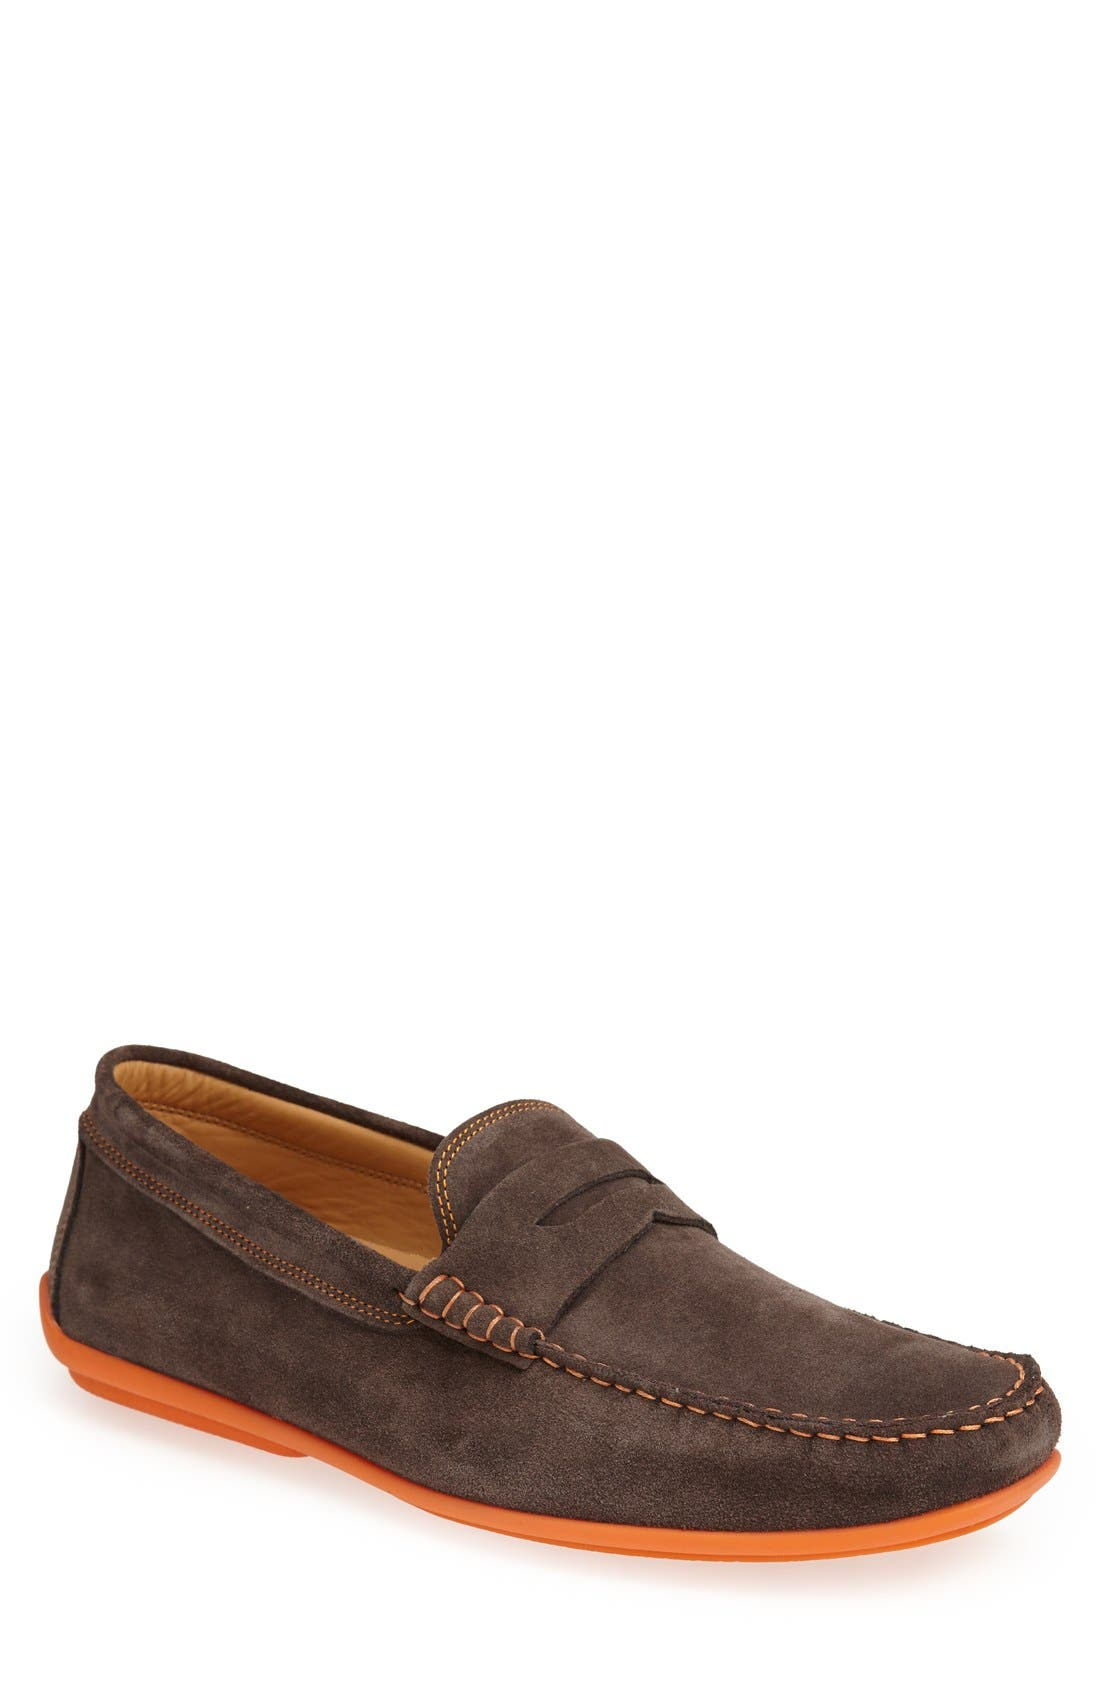 'North Sides' Penny Loafer,                         Main,                         color, Brown Suede/ Orange